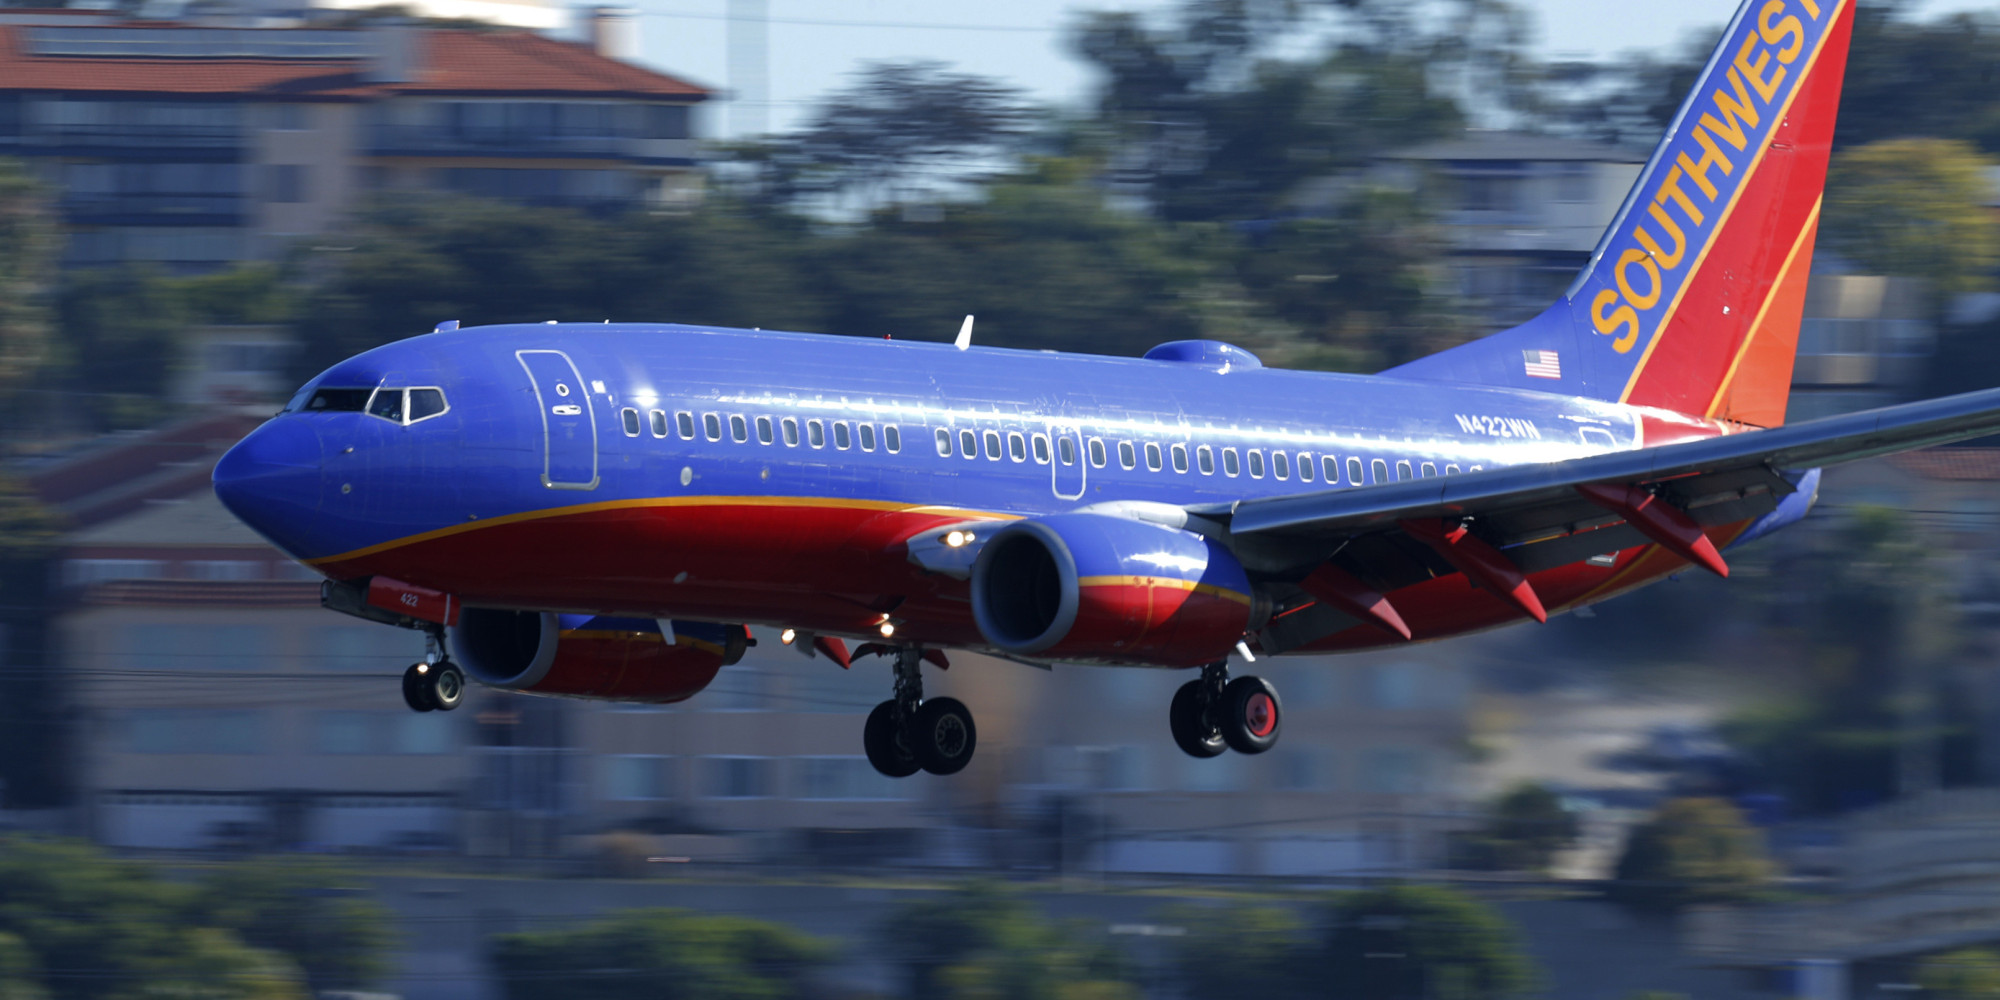 airline and southwest Learn about working at southwest airlines join linkedin today for free see who you know at southwest airlines, leverage your professional network, and get hired.